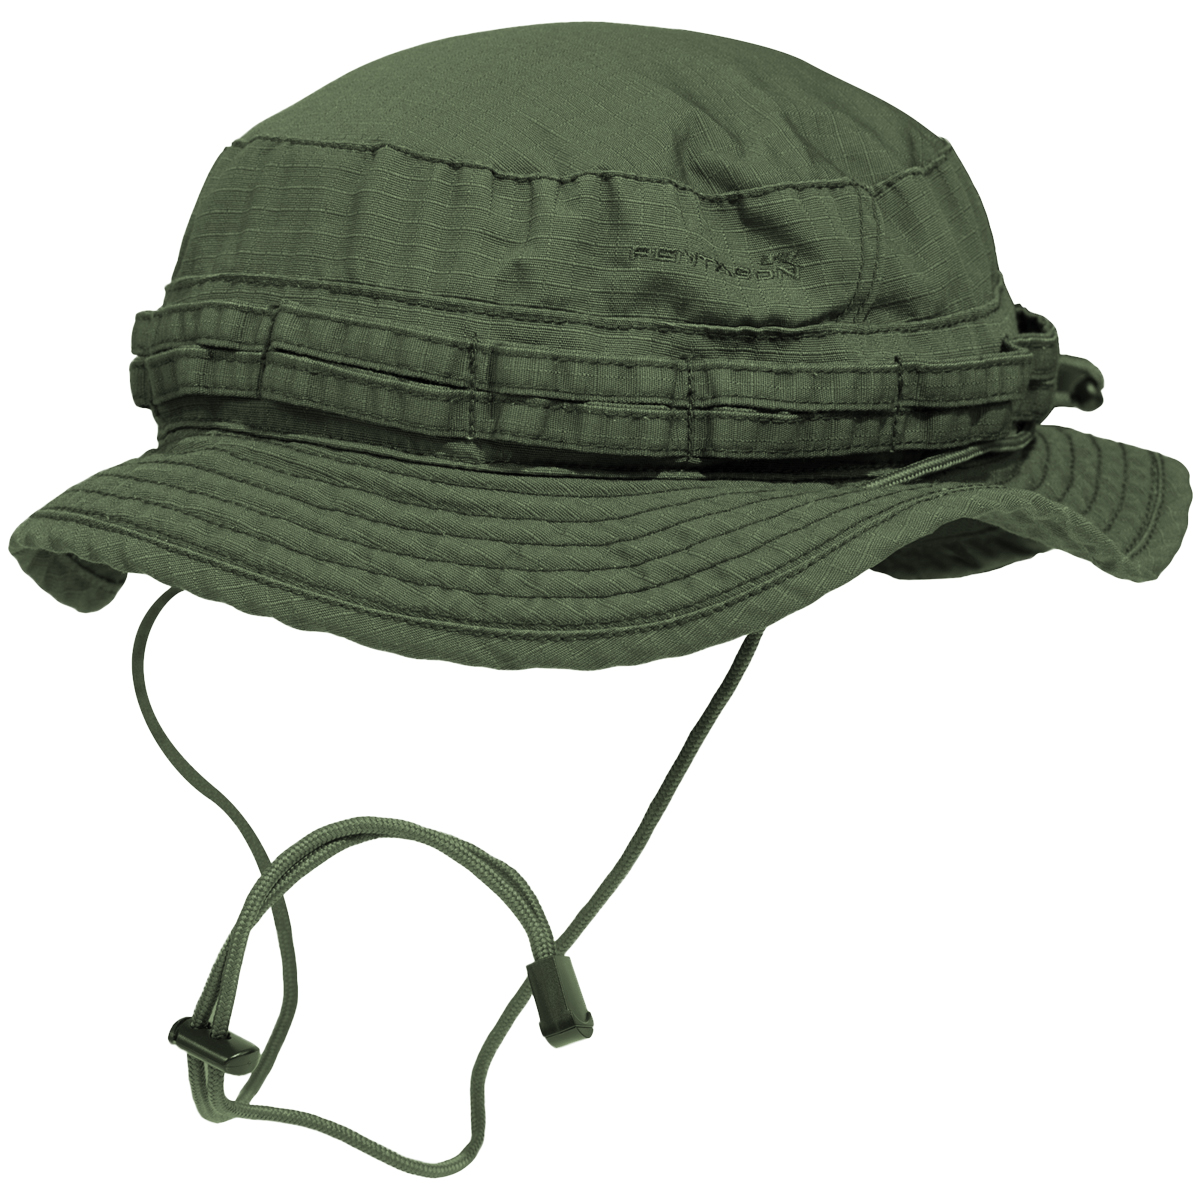 Details about Pentagon Babylon Boonie Hat Military Army Jungle Fishing  Outdoor Camo Green 0ba97747210b